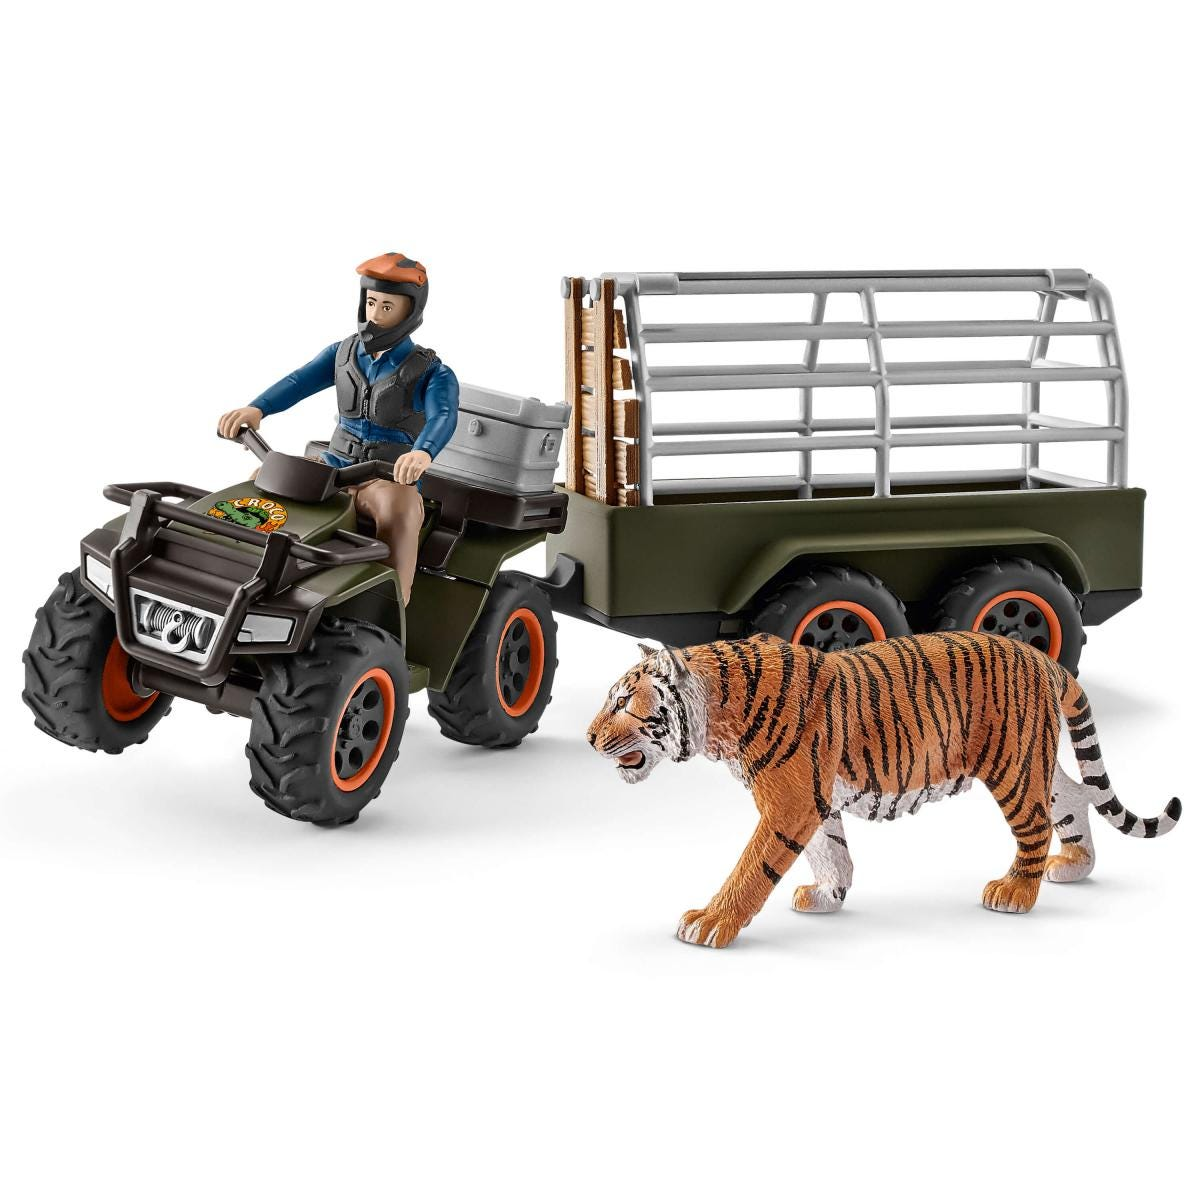 Schleich Quad Bike with Trailer and Figure Toy Figure 42351 NEW